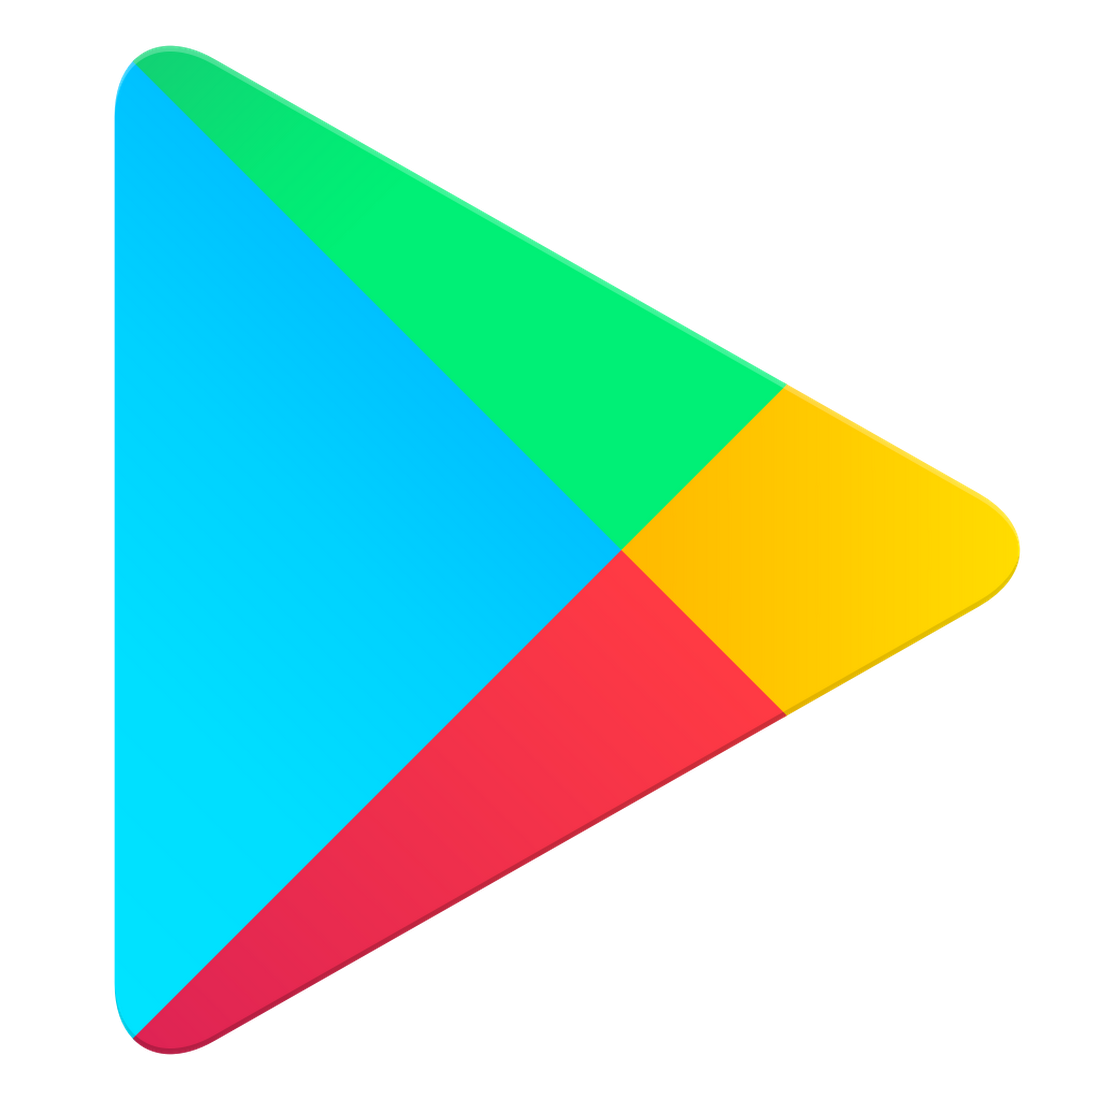 Google will soon allow gambling apps in the US Play Store - CNET